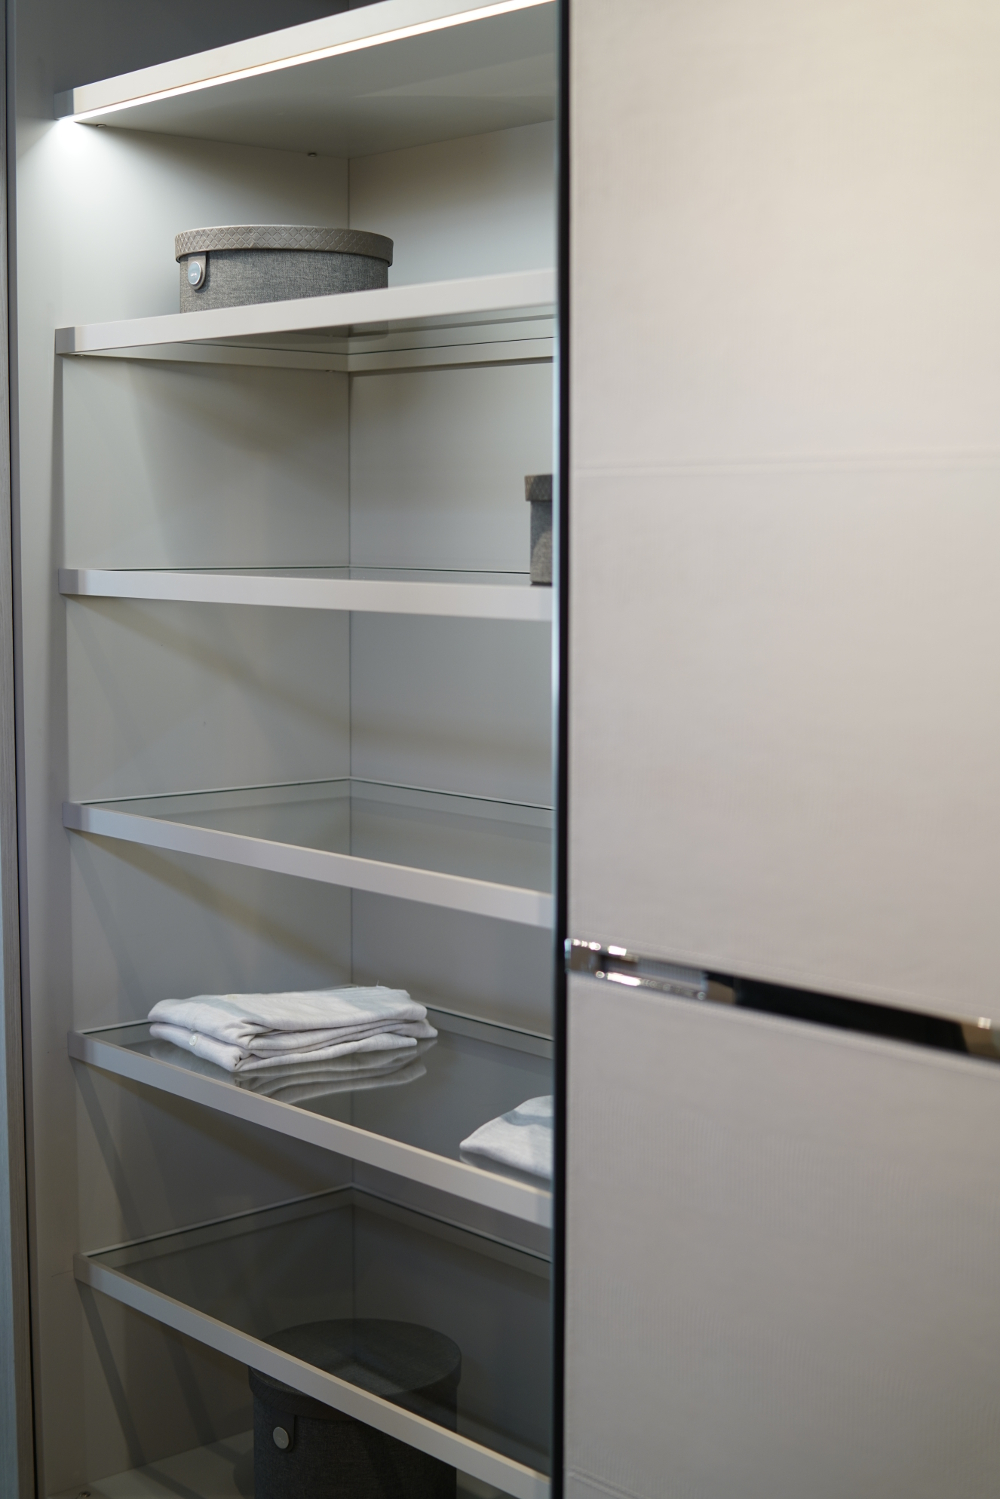 shelf-storage-interior-designer-miami-ft-lauderdale-hallandale-beach-hollywood-fl-florida